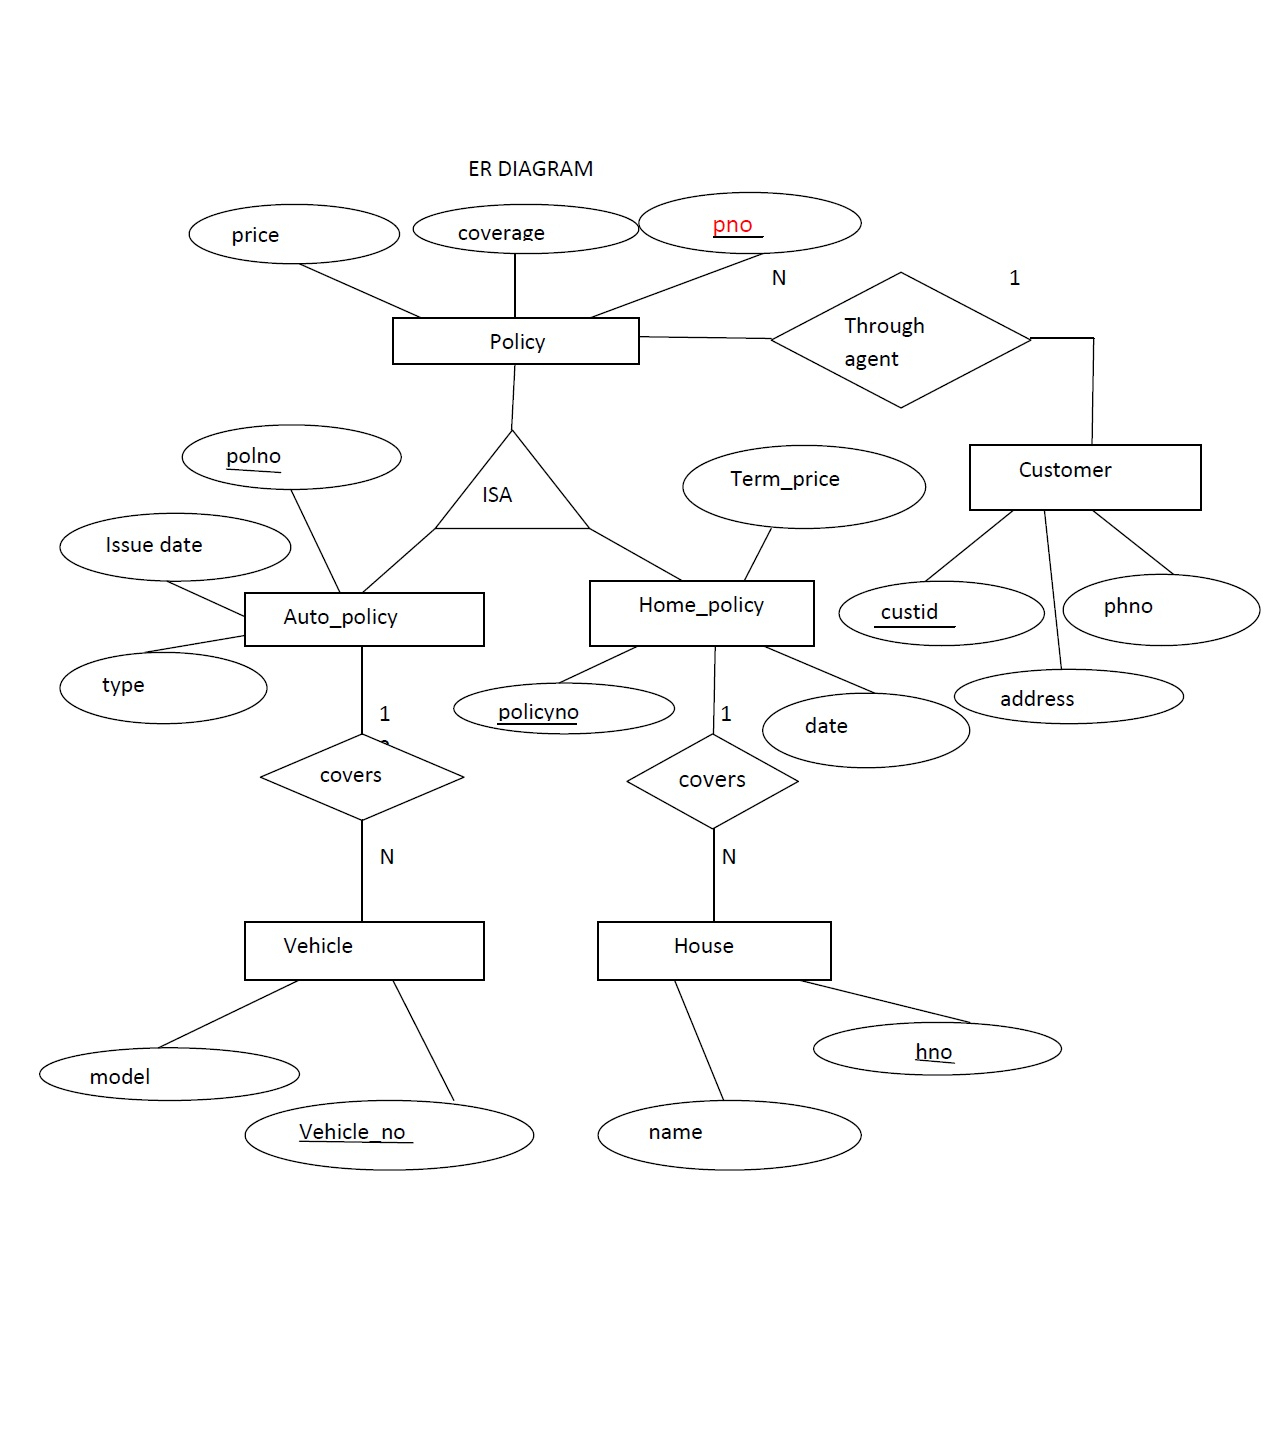 Entity Relationship Diagram For Car Insurance Company - 9.9.ulrich pertaining to Er Diagram Examples Car Insurance